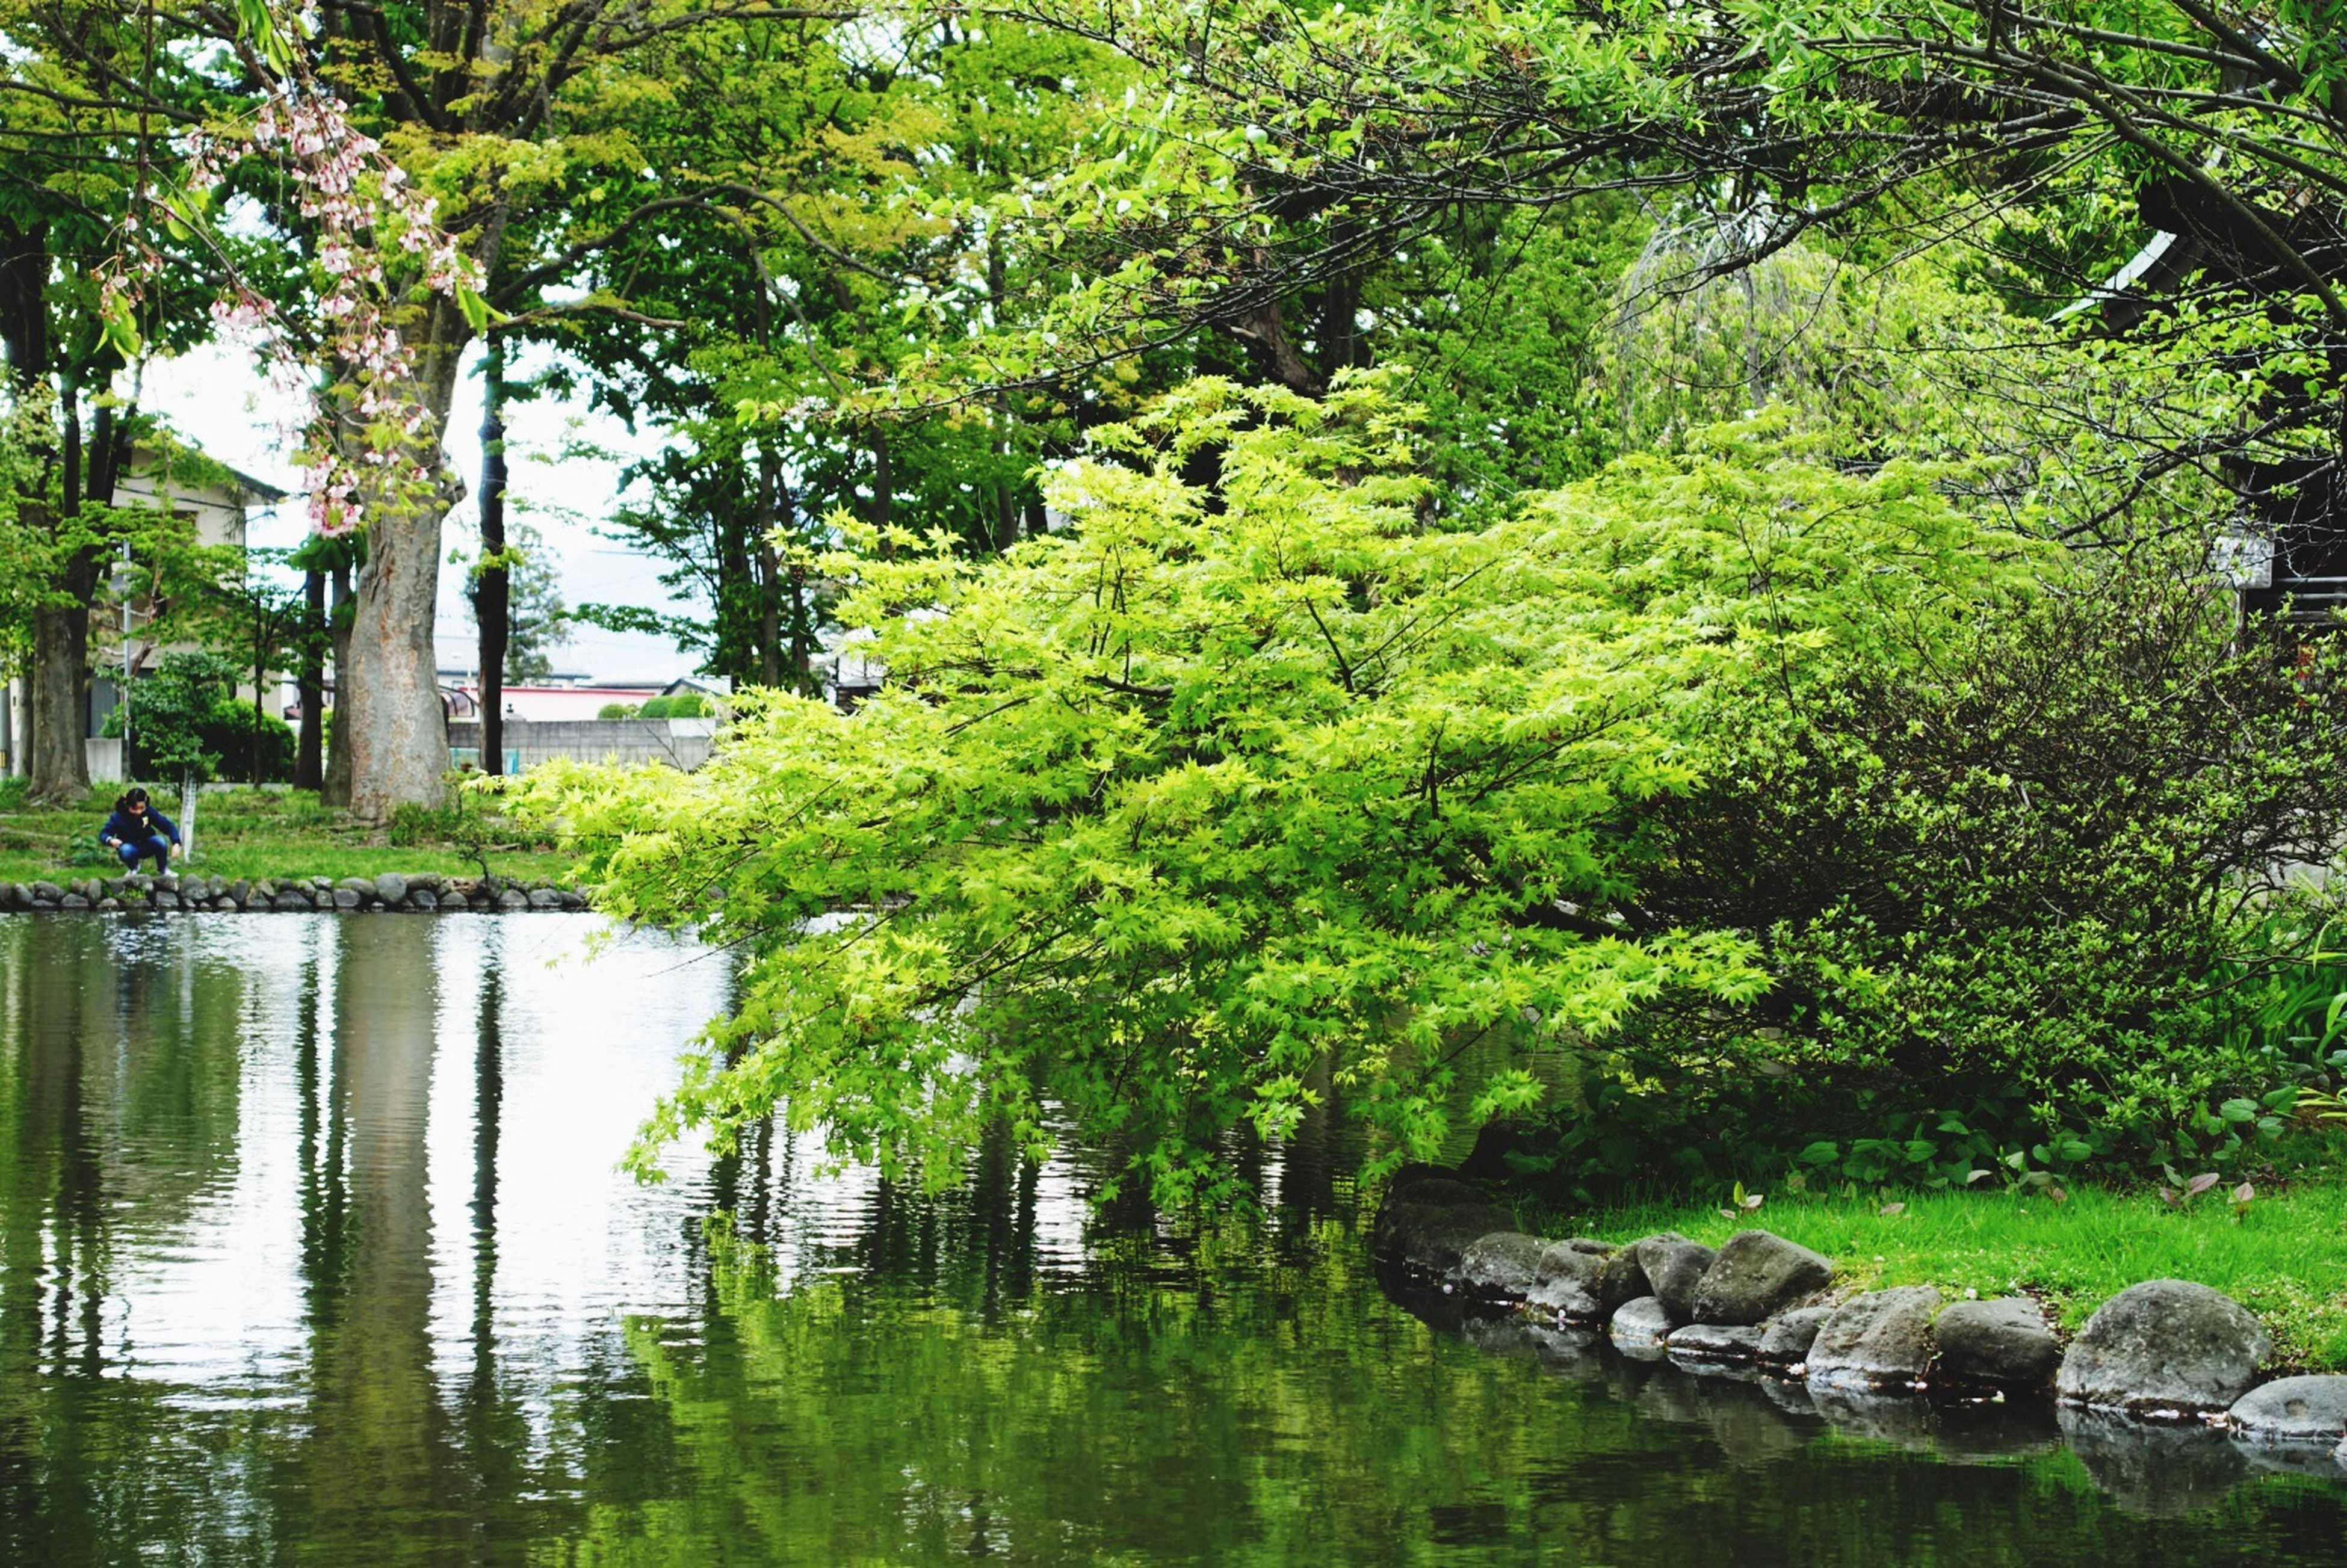 water, tree, green color, reflection, growth, tranquility, nature, waterfront, beauty in nature, lake, tranquil scene, pond, branch, river, scenics, plant, lush foliage, day, forest, green